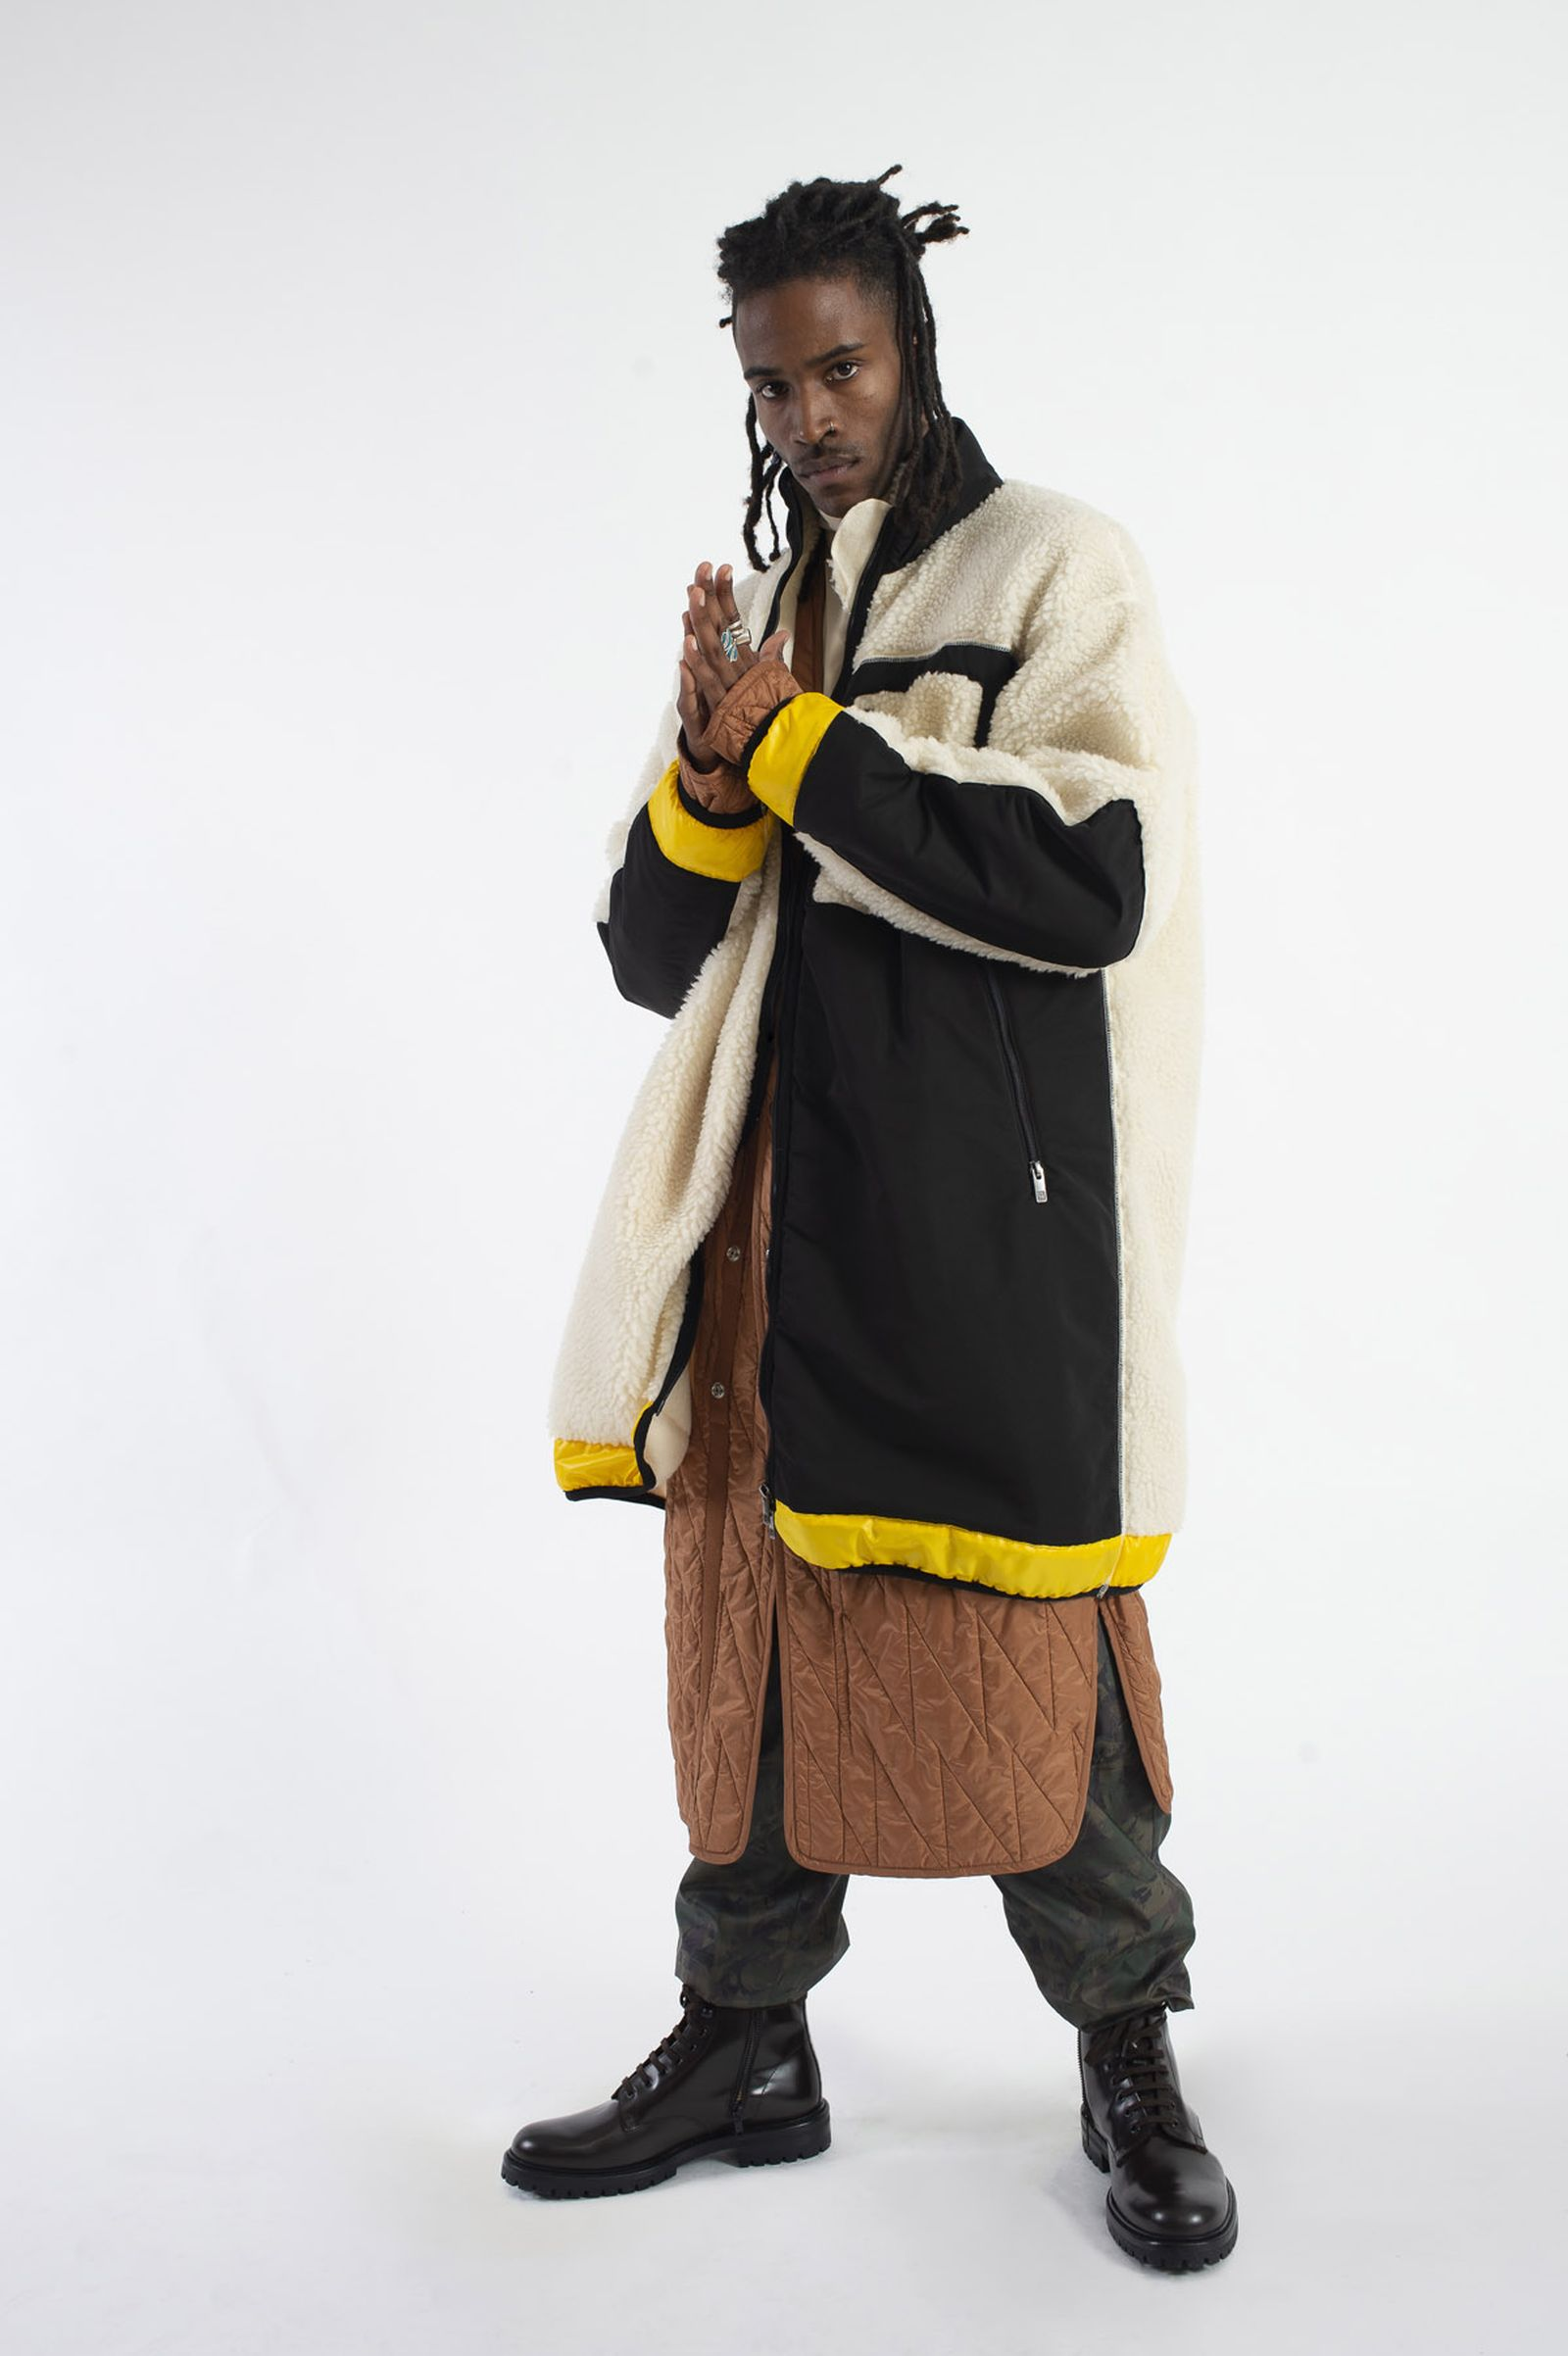 fleece hottest item fall winter NHoolywood British columbia Fendi Stüssy